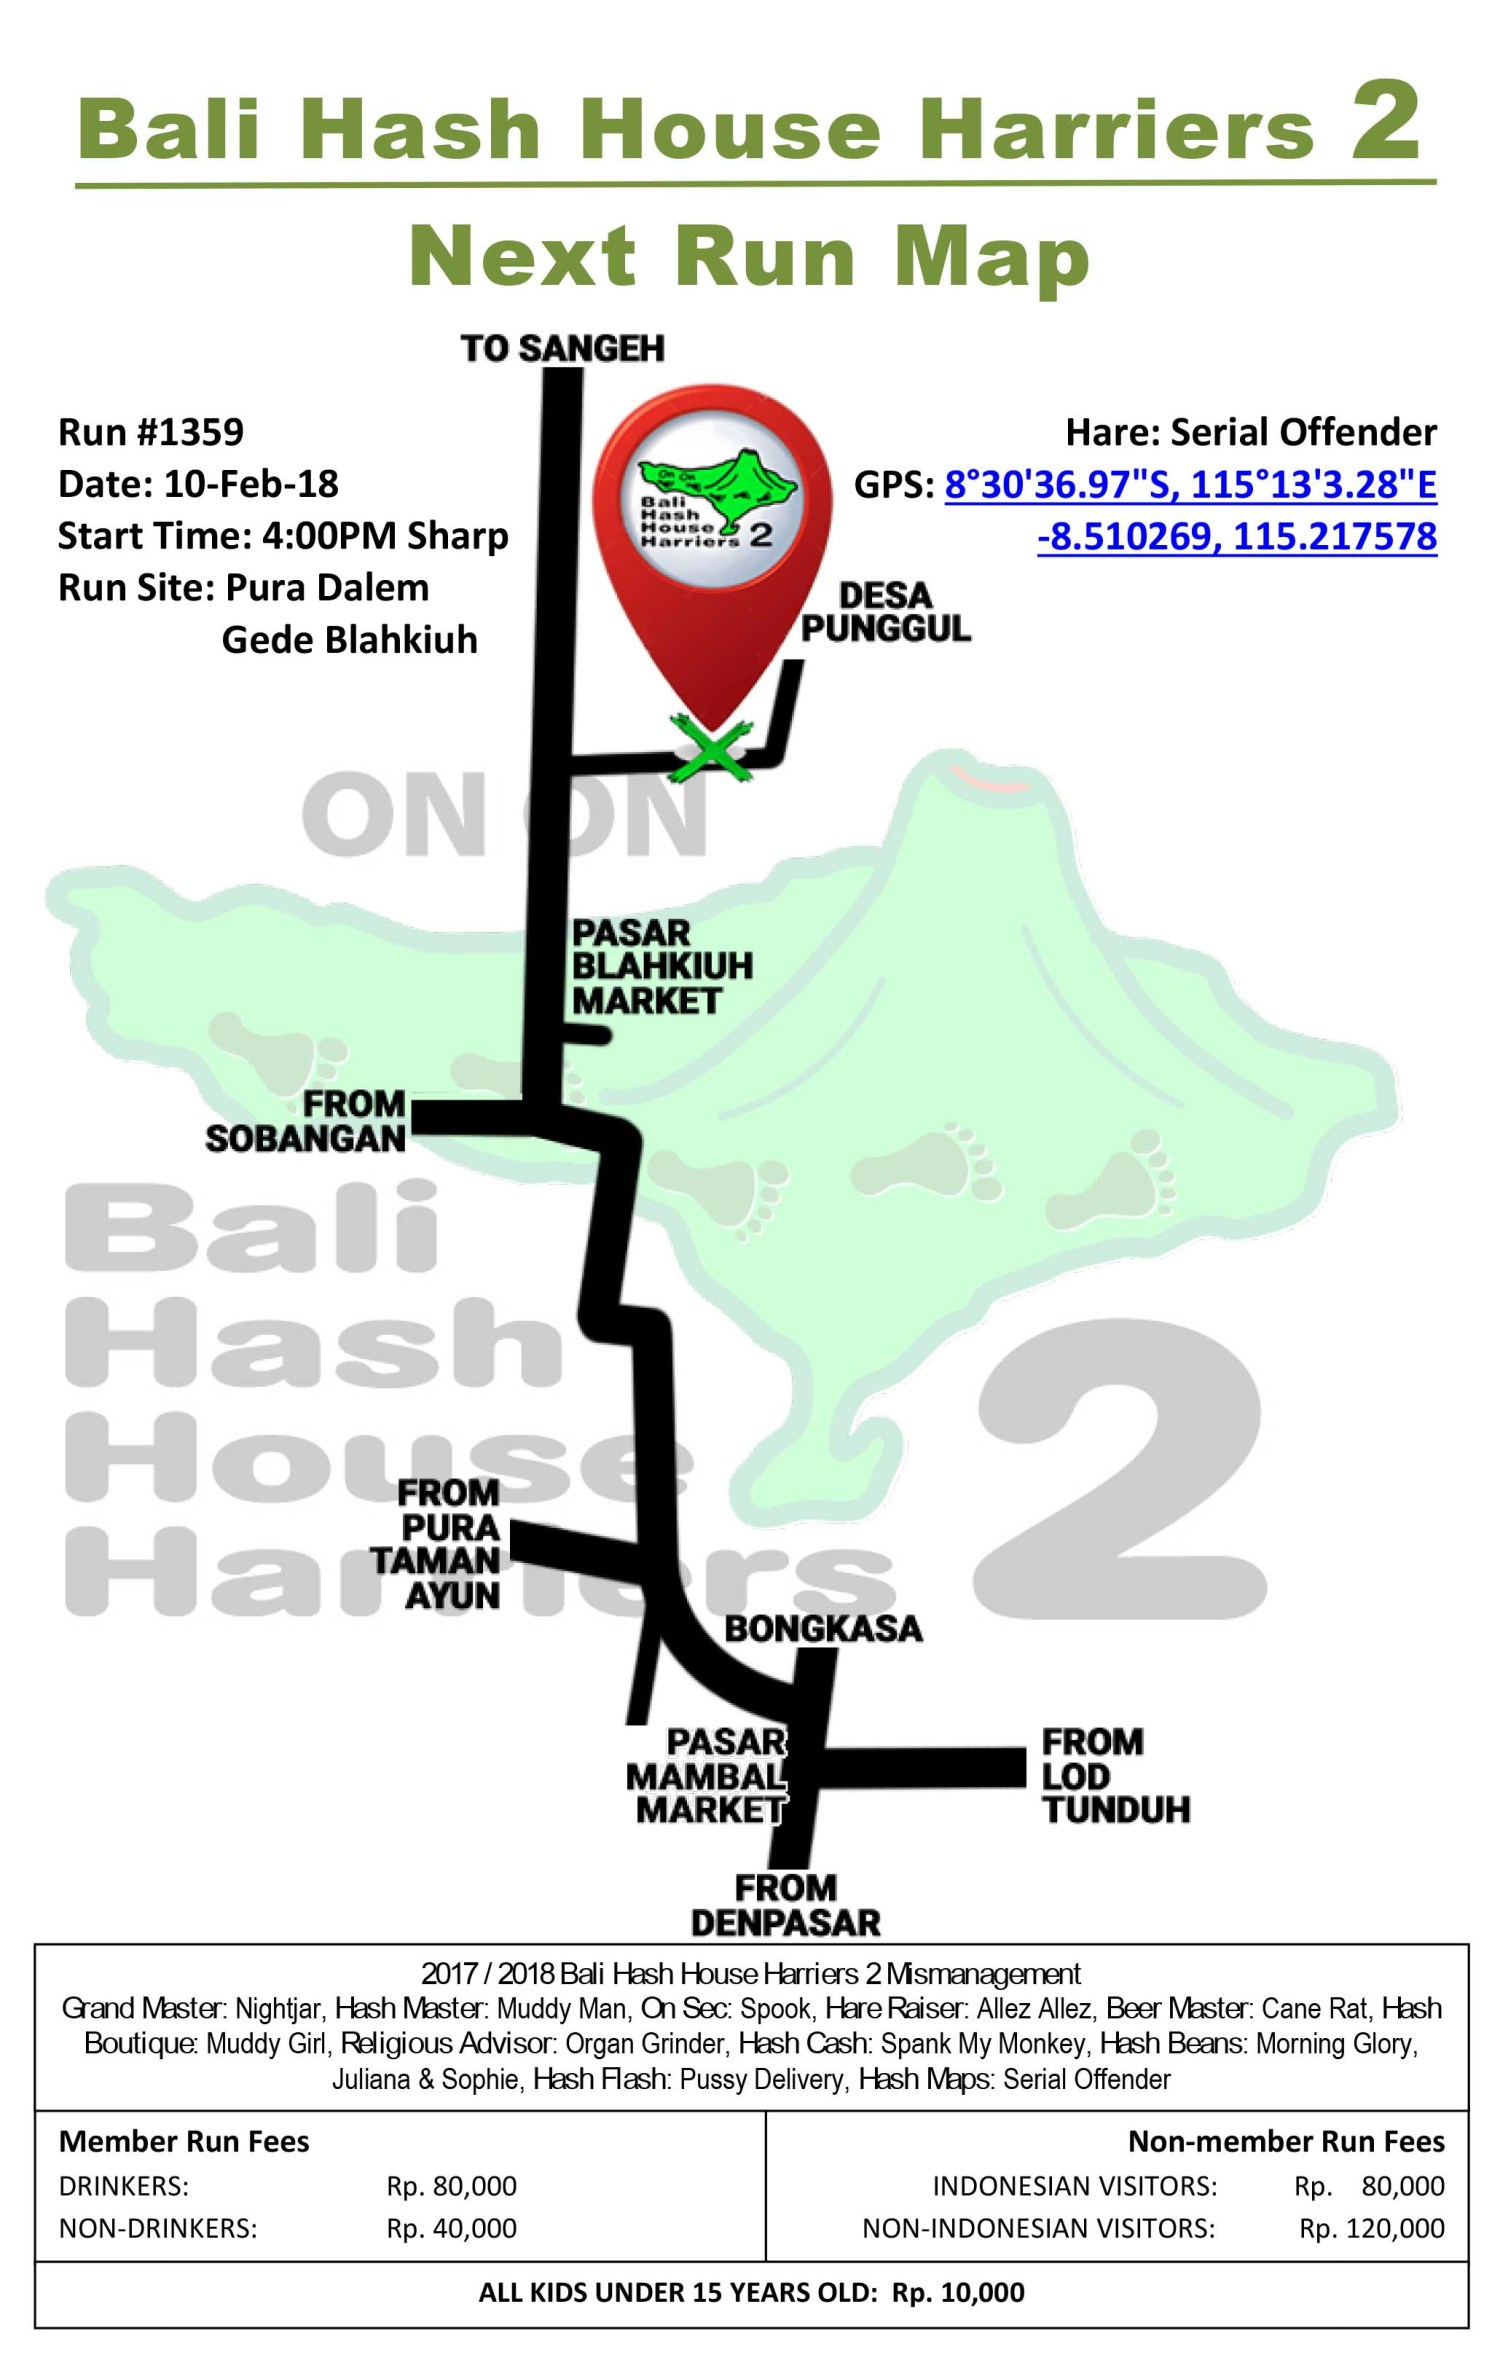 BHHH2 Next Run Map 1359 Pura Dalem Gede Blahkiuh 10-Feb-18